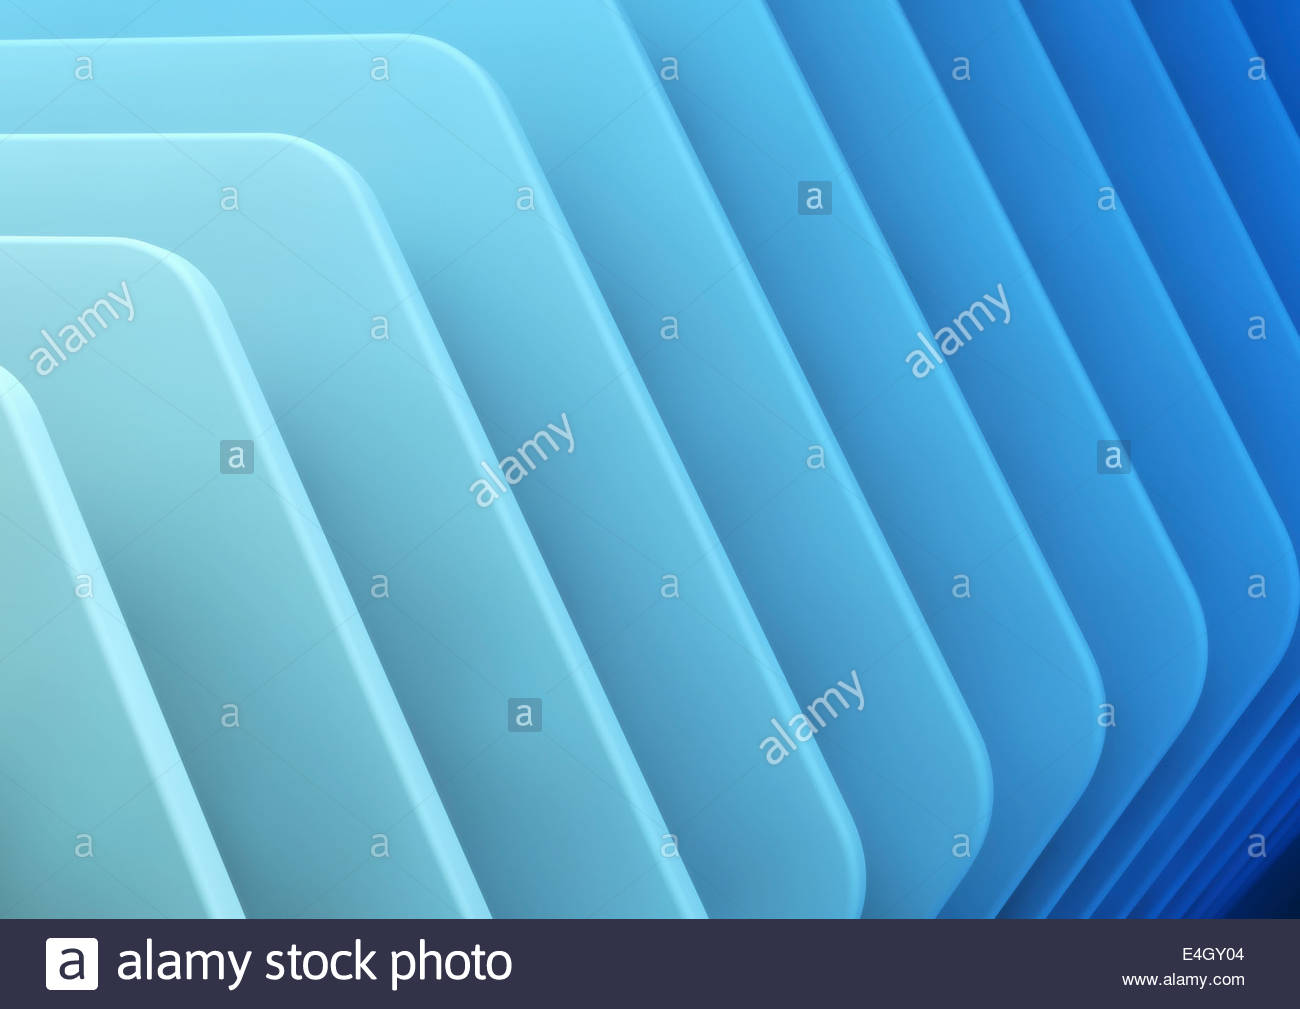 Abstract full frame blue ridge pattern - Stock Image